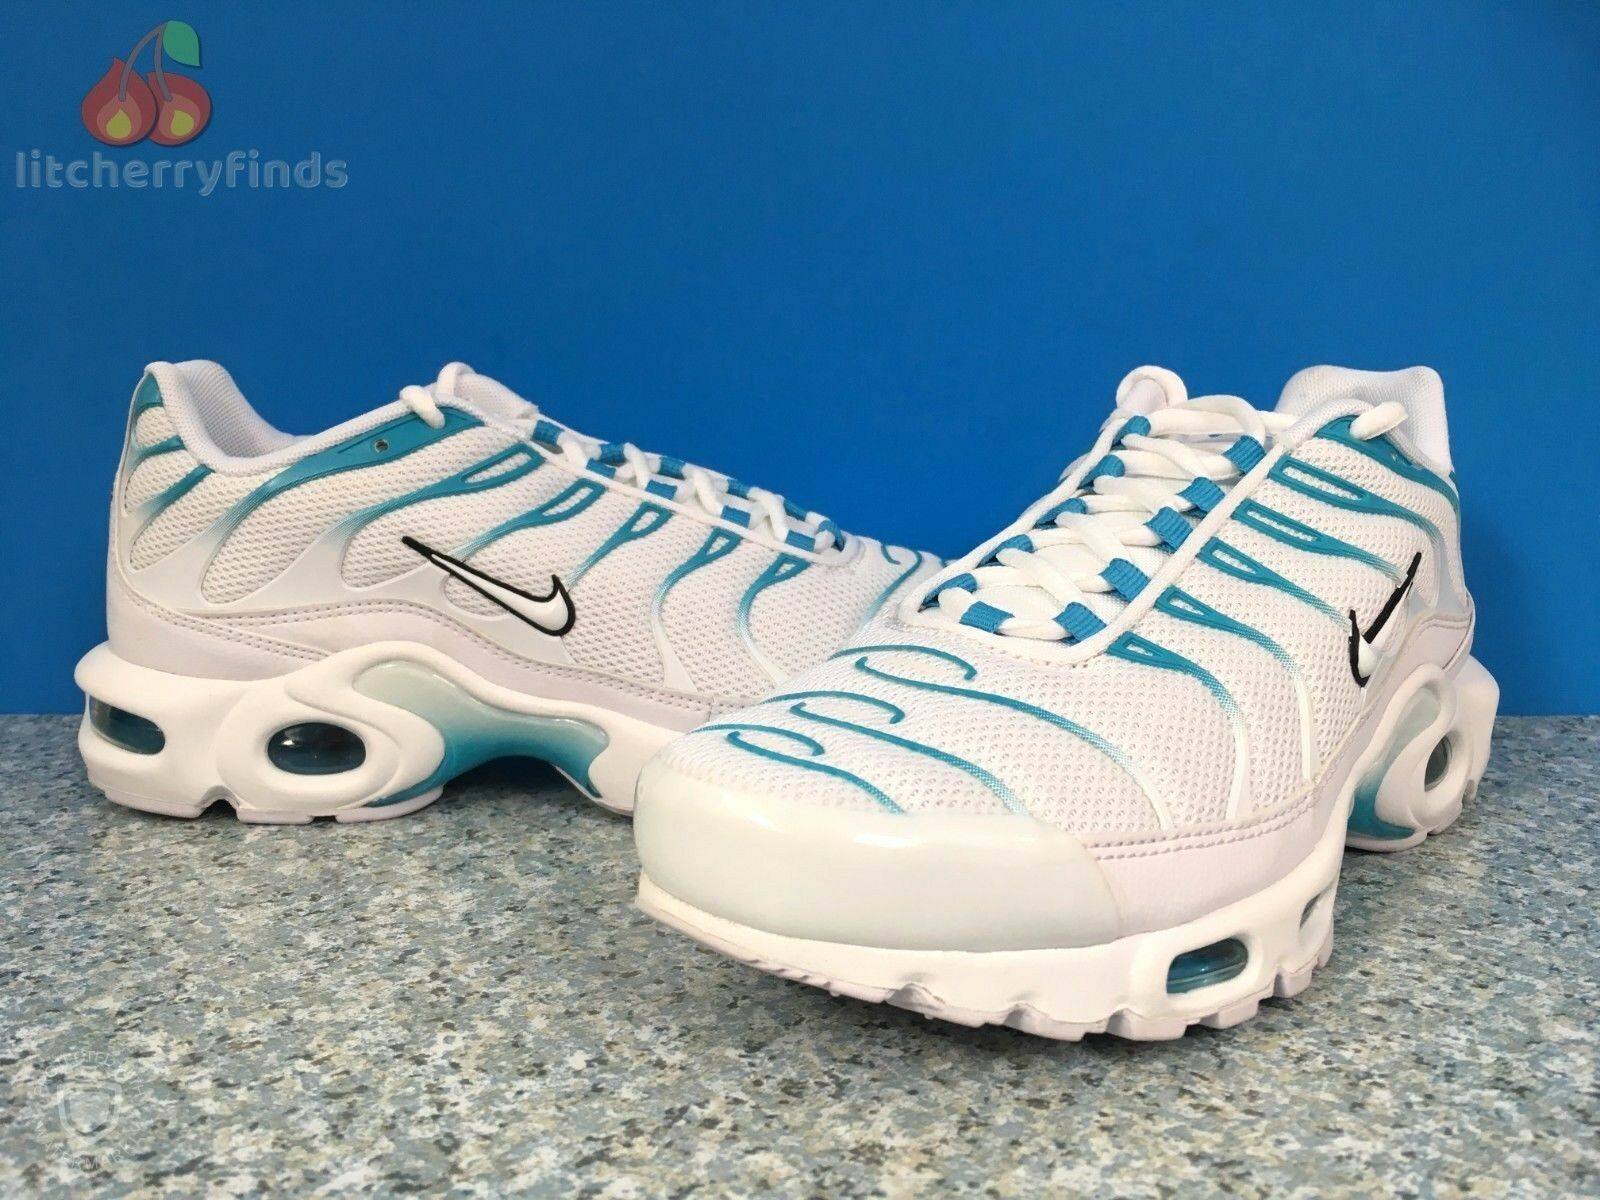 Nike Air Max Plus TN Mens Size 7 Ultra Rare Blue Fury White Trainer 852630 105